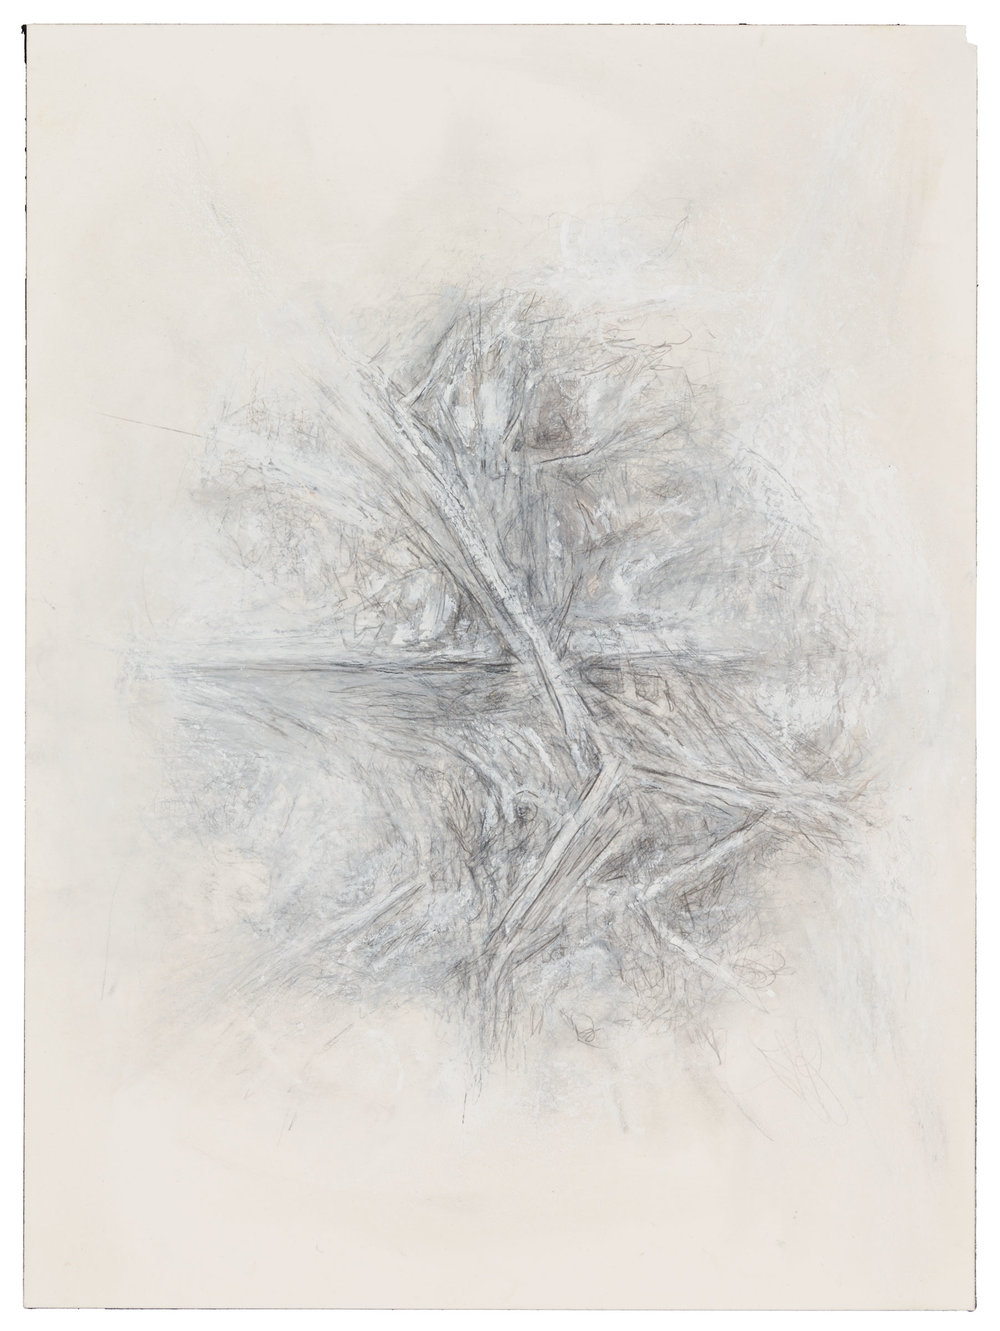 Hedda Sterne,   Untitled (October 10, 2001)  , 2001,   Mixed media on paper,   12 1/4 in. x 9 1/8 in. (31.12 cm x 23.18 cm)